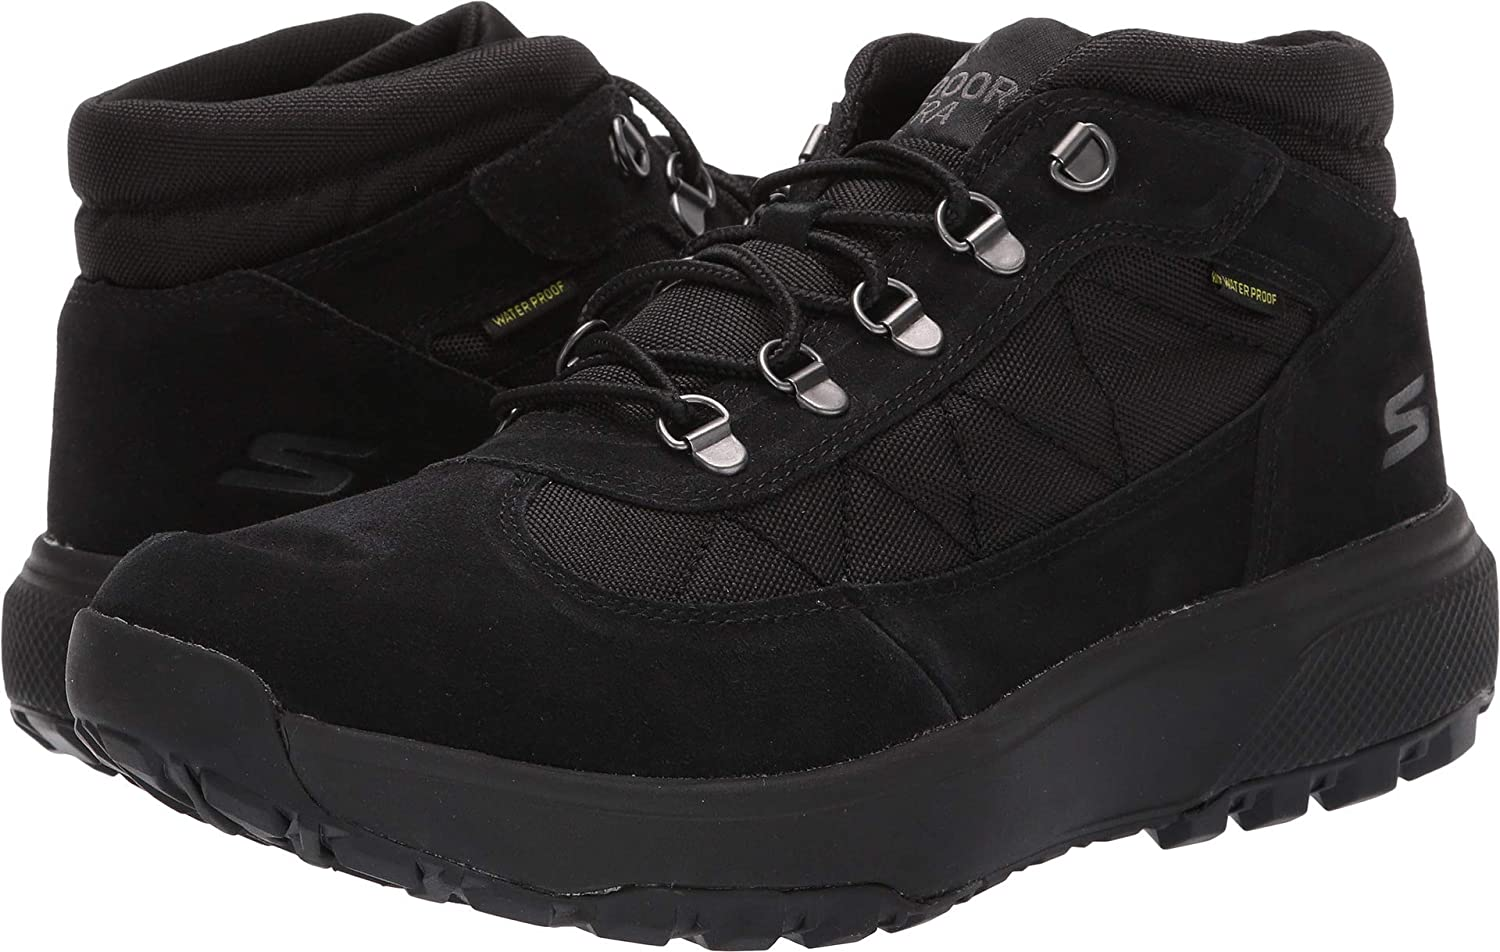 Skechers Go Outdoors Ultra Adventures